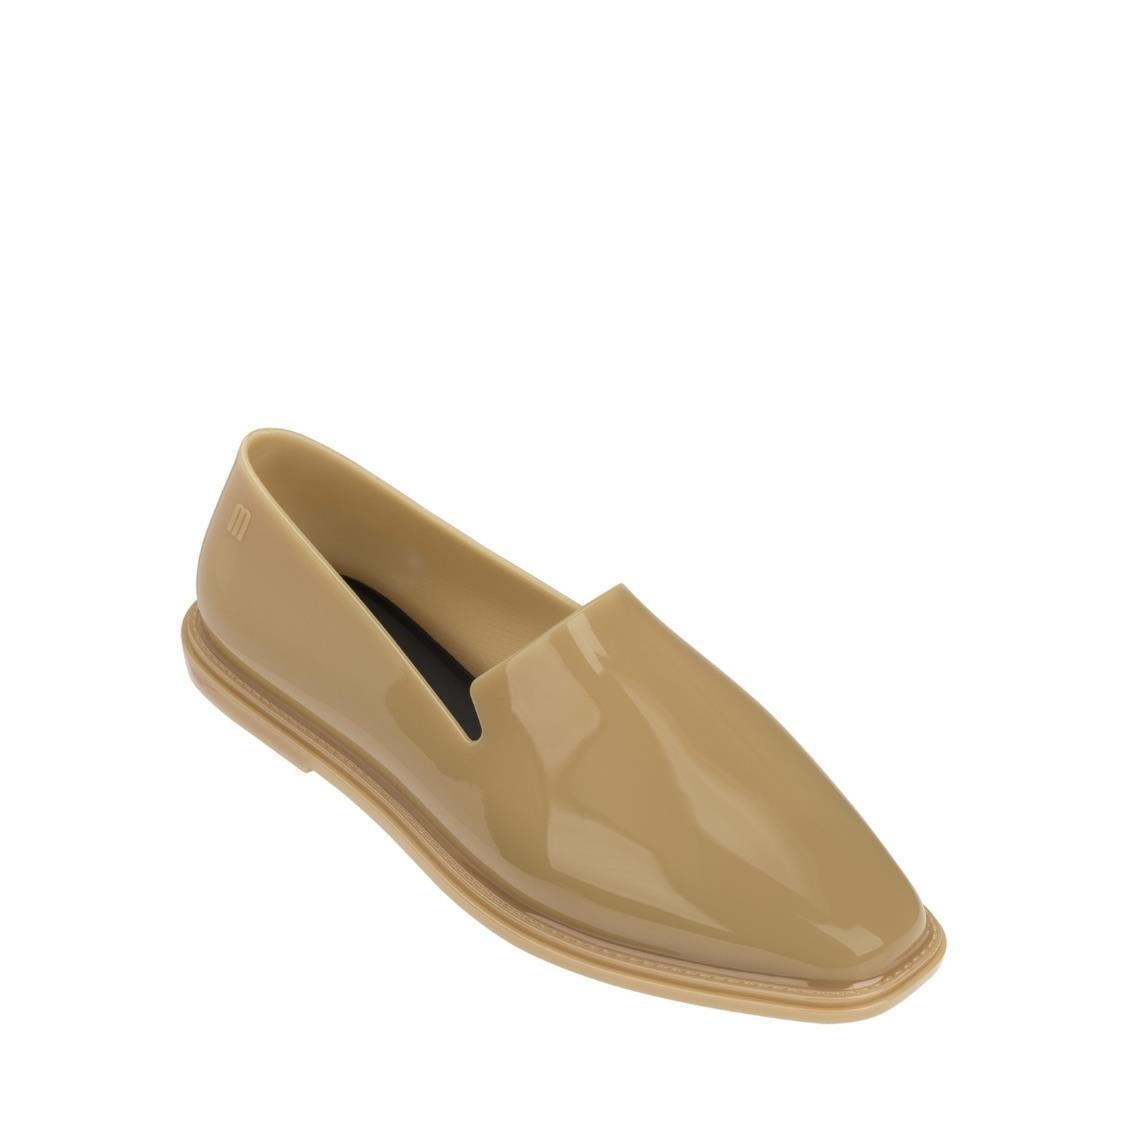 Prana Loafers Beige-Black